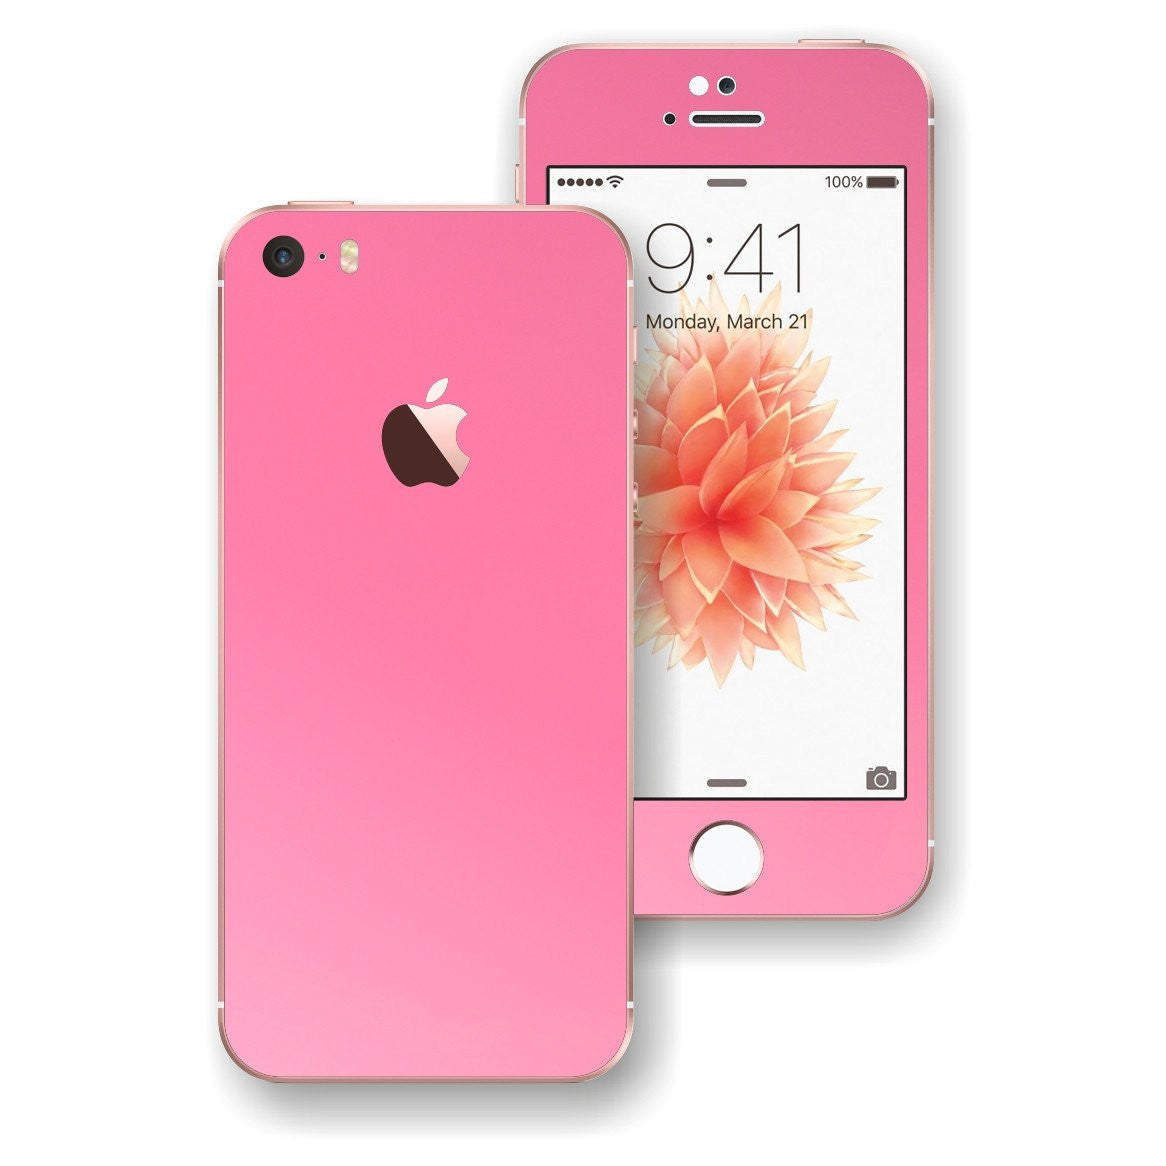 iPhone SE 3M PINK Matt Matte Skin Wrap Decal Sticker Cover Protector by EasySkinz